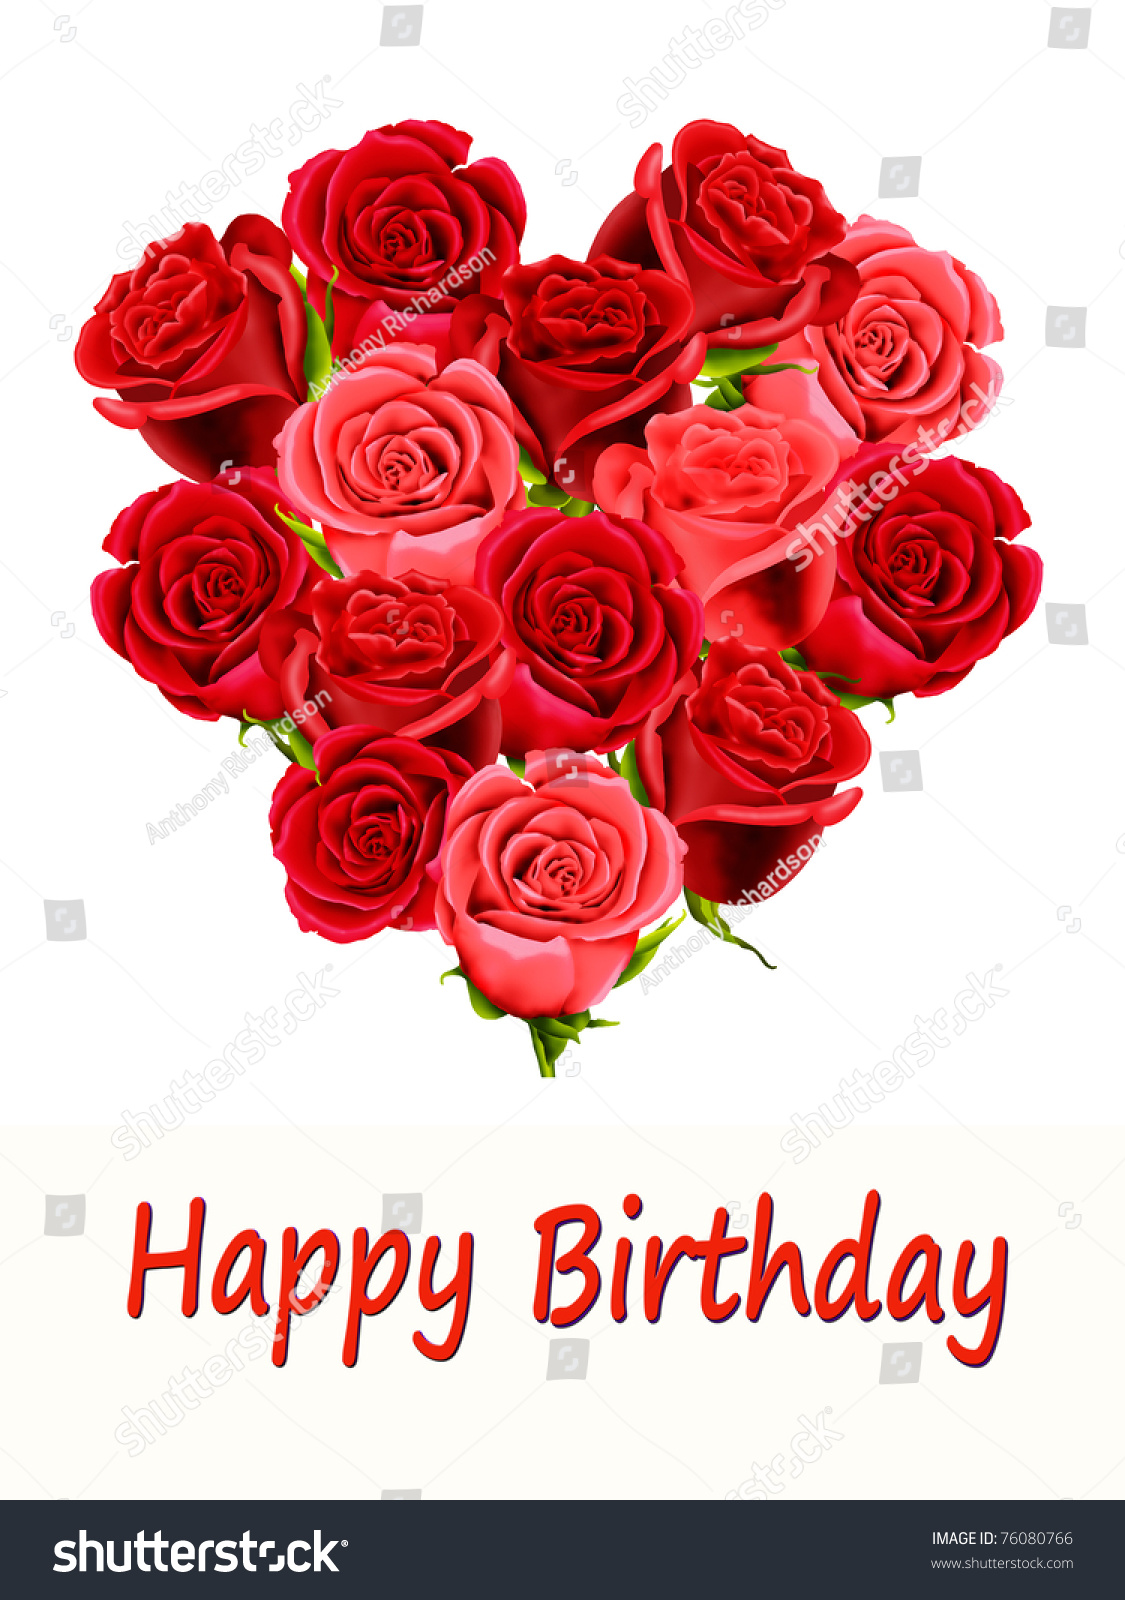 Birthday Card Heart Shaped Roses Happy Illustration 76080766 – Birthday Greetings with Roses